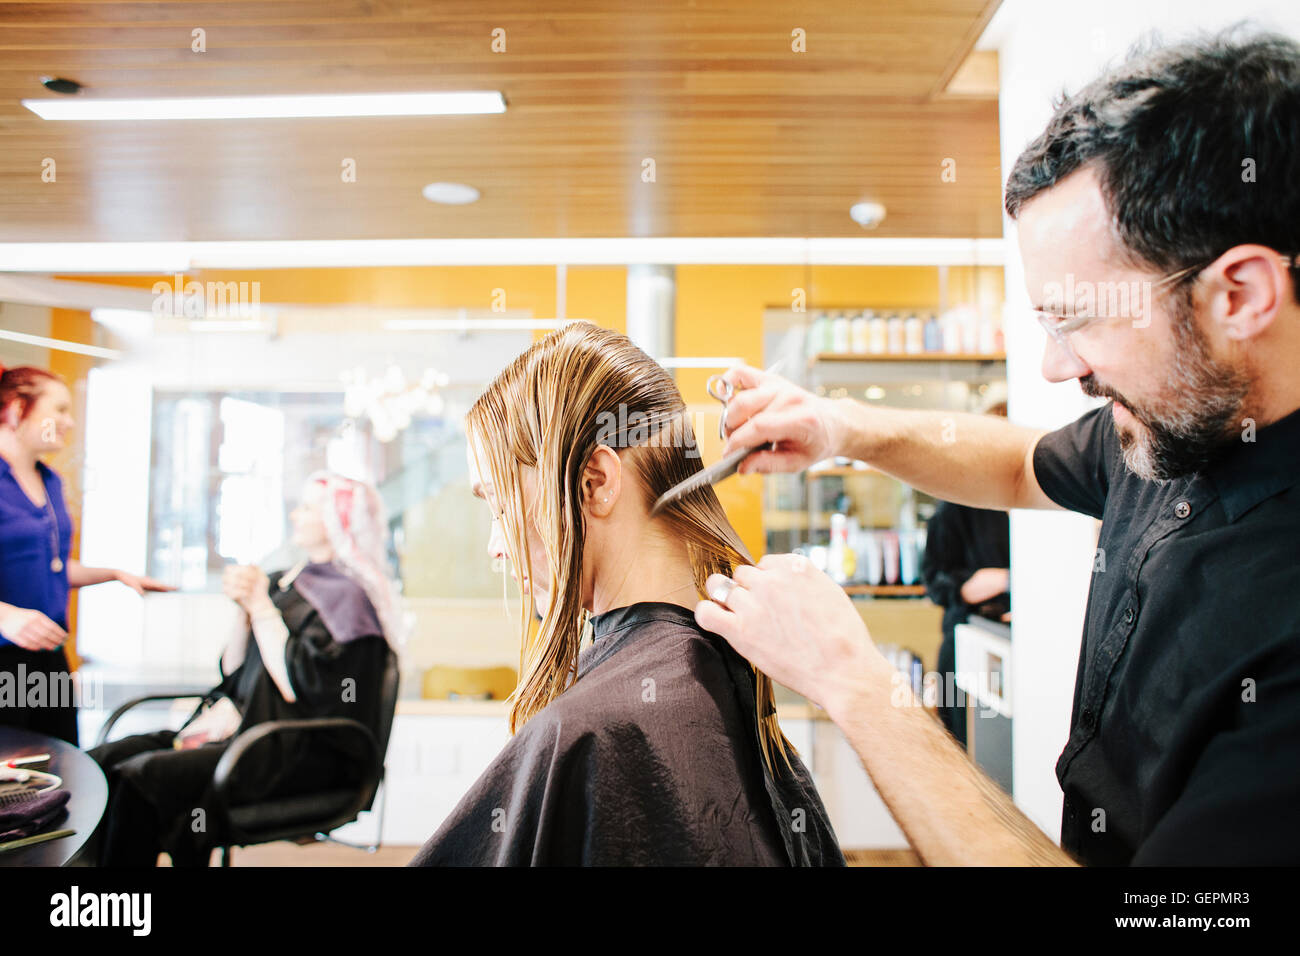 A hair stylist with a client, combing her long hair in sections. - Stock Image